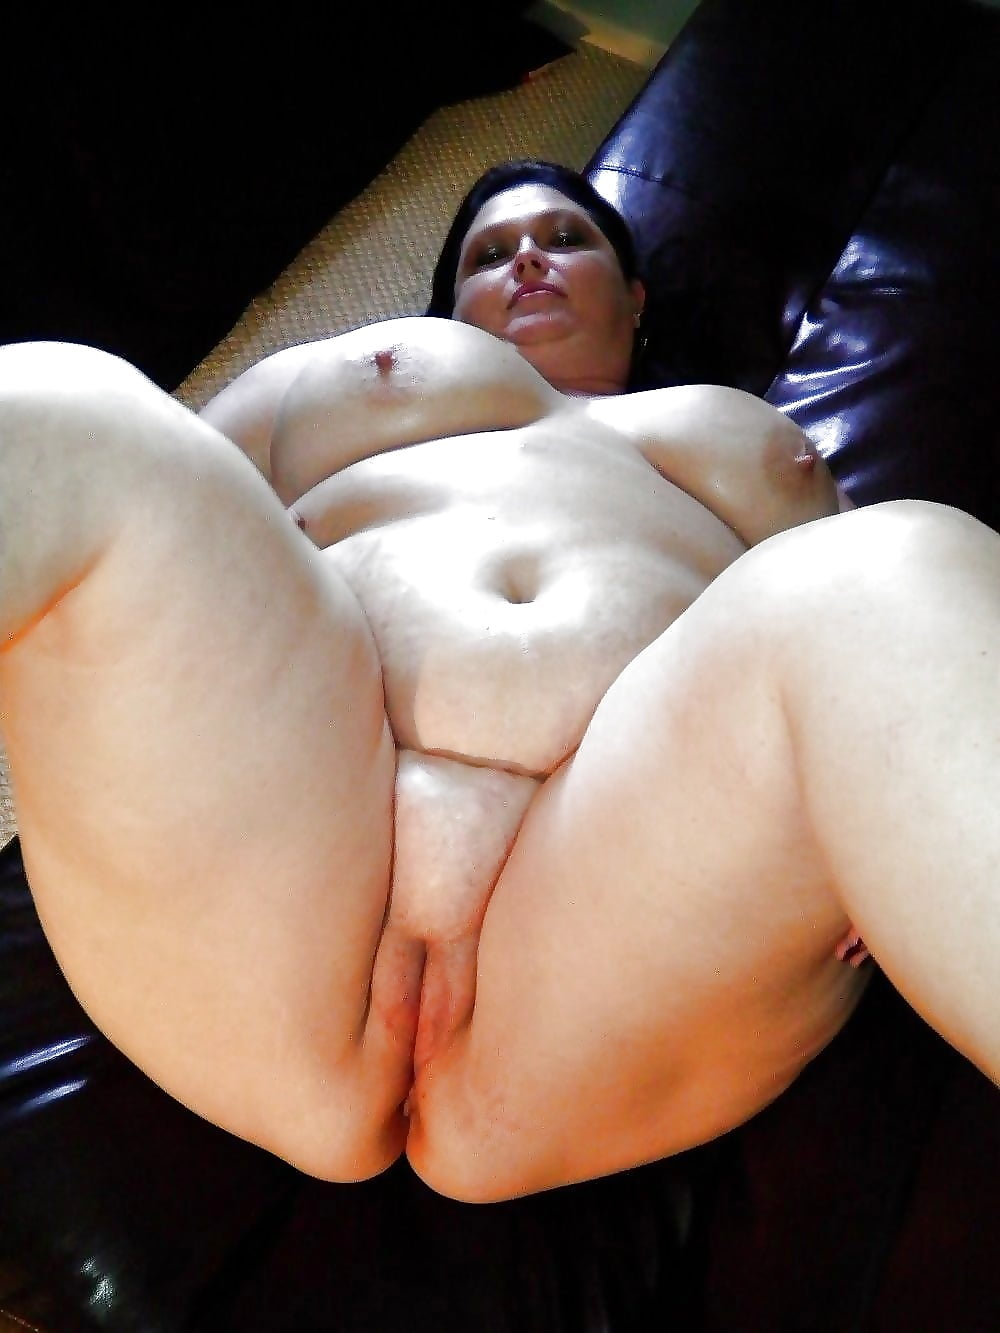 Burk pussy free thick girl porn naked wife flashing